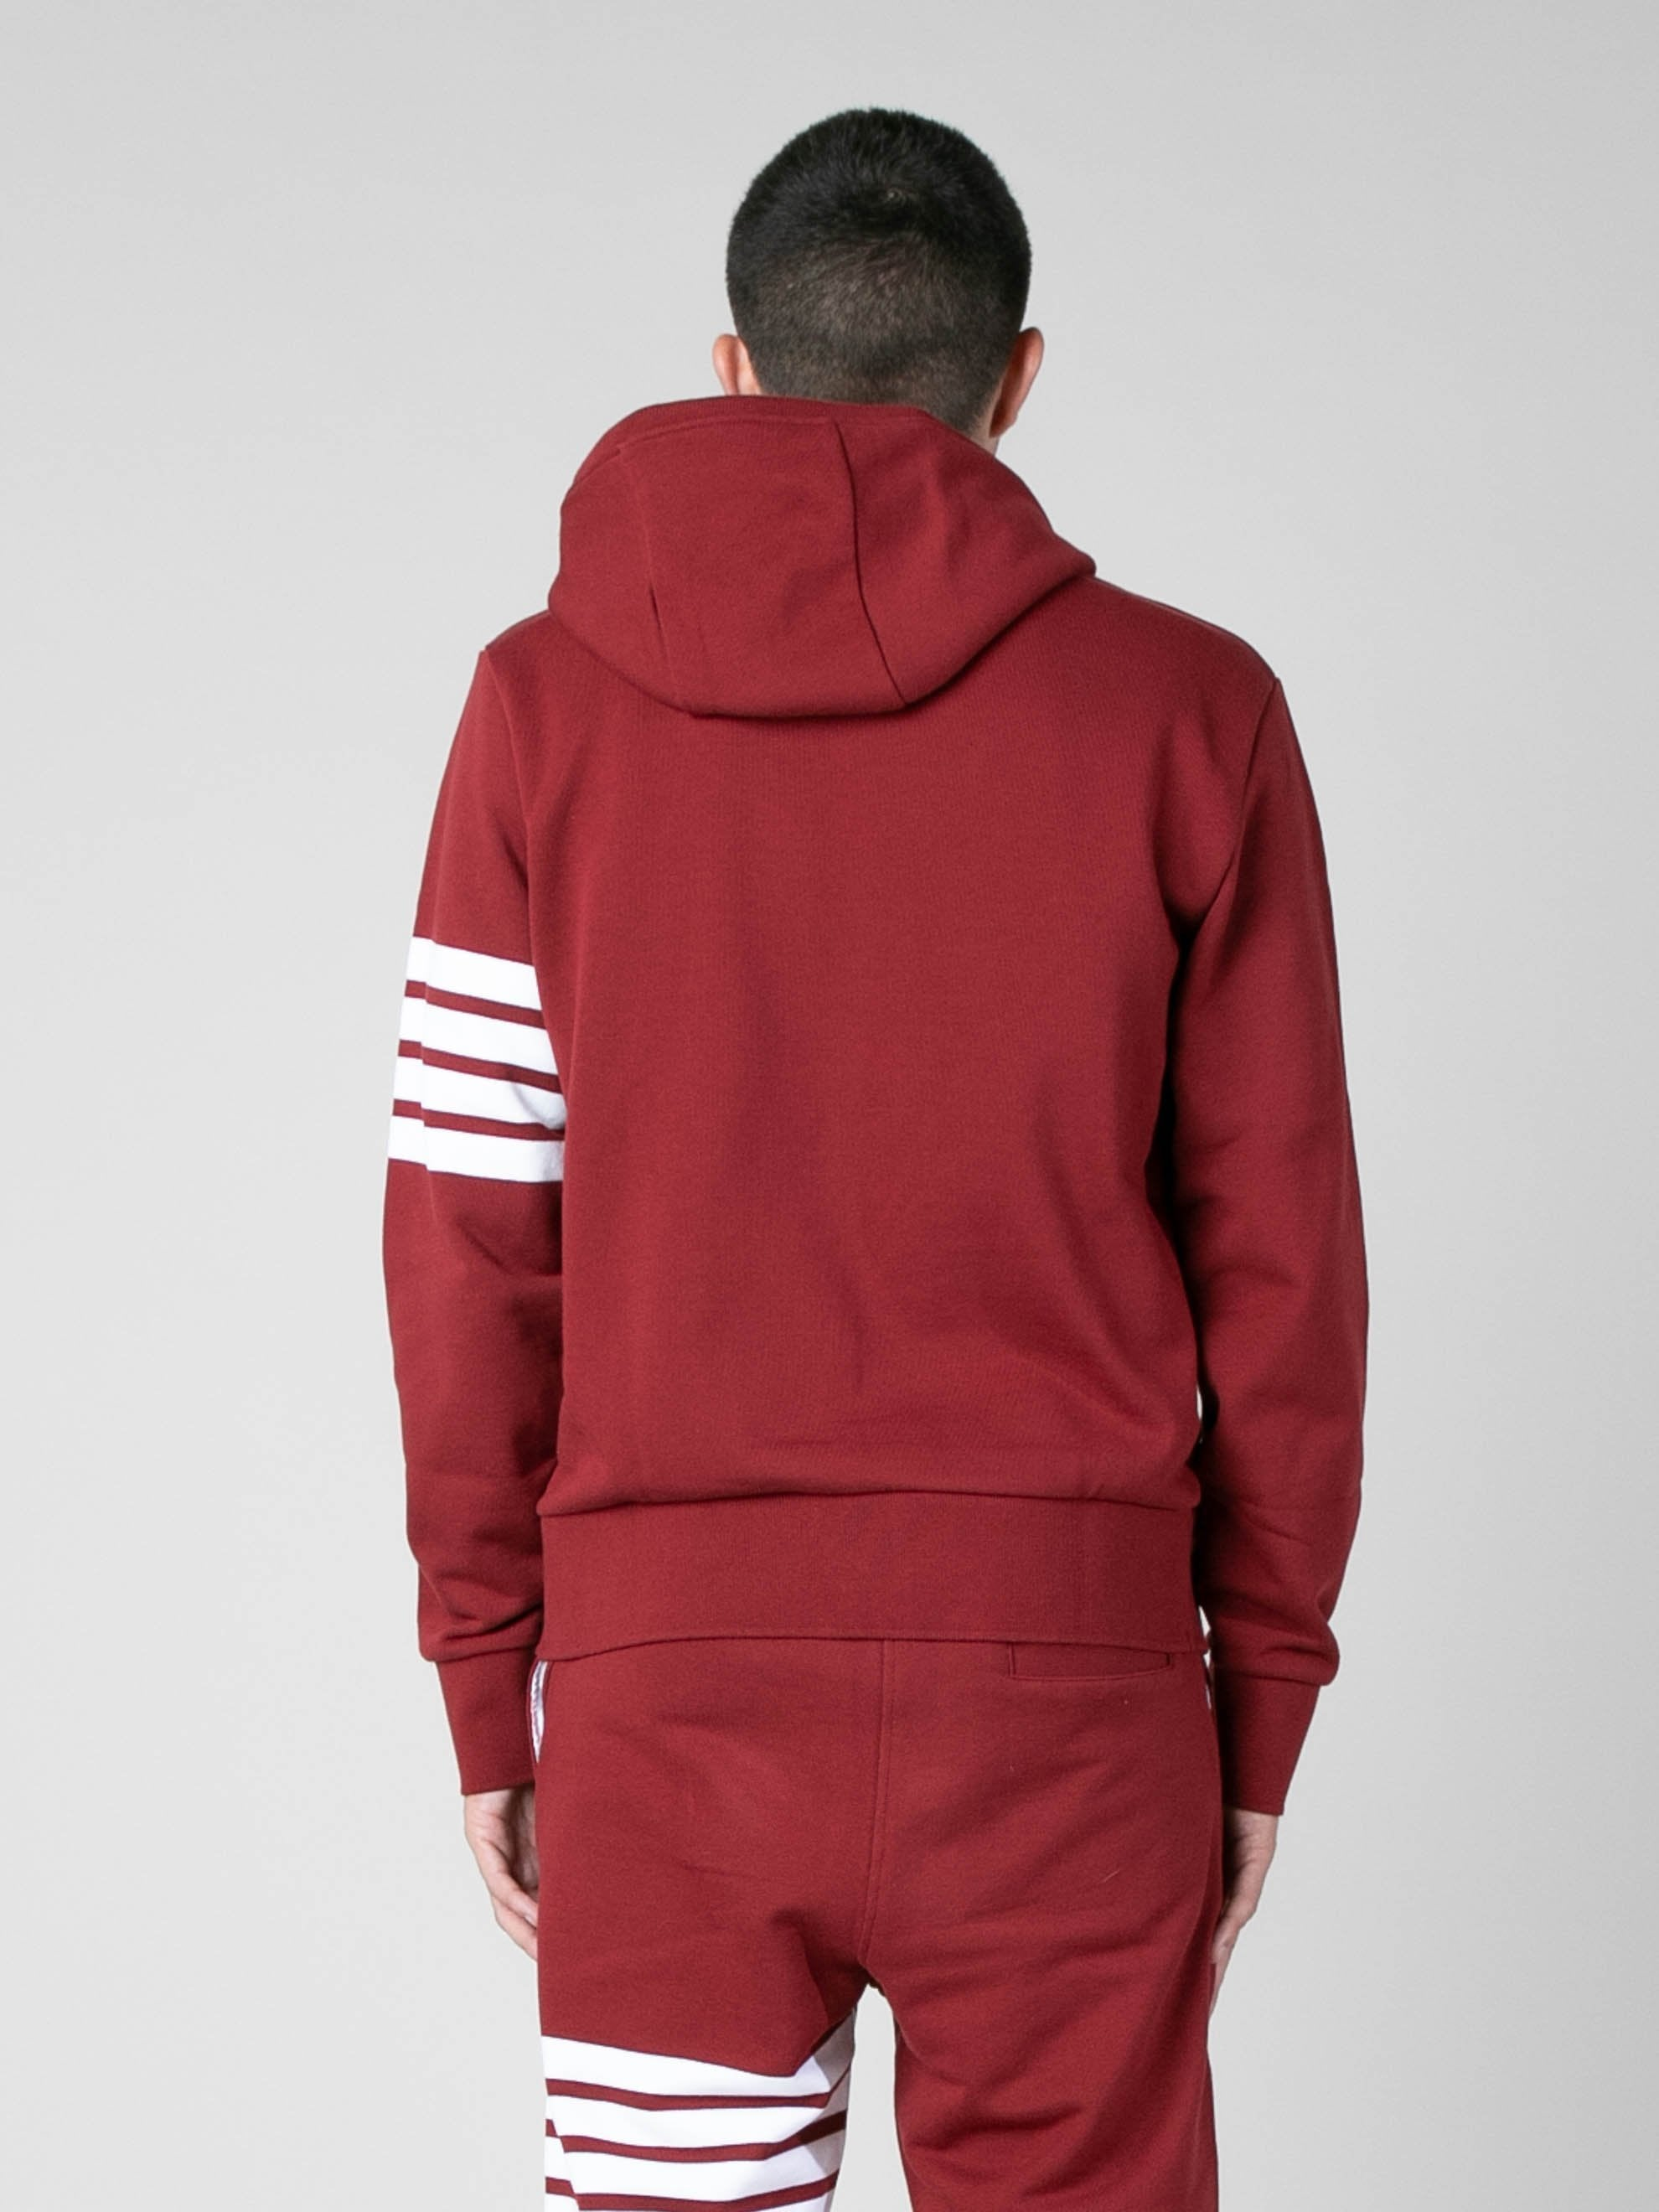 Med Red Hoodie Pullover In Classic Loop Back w/ Engineered 4 Bar 6